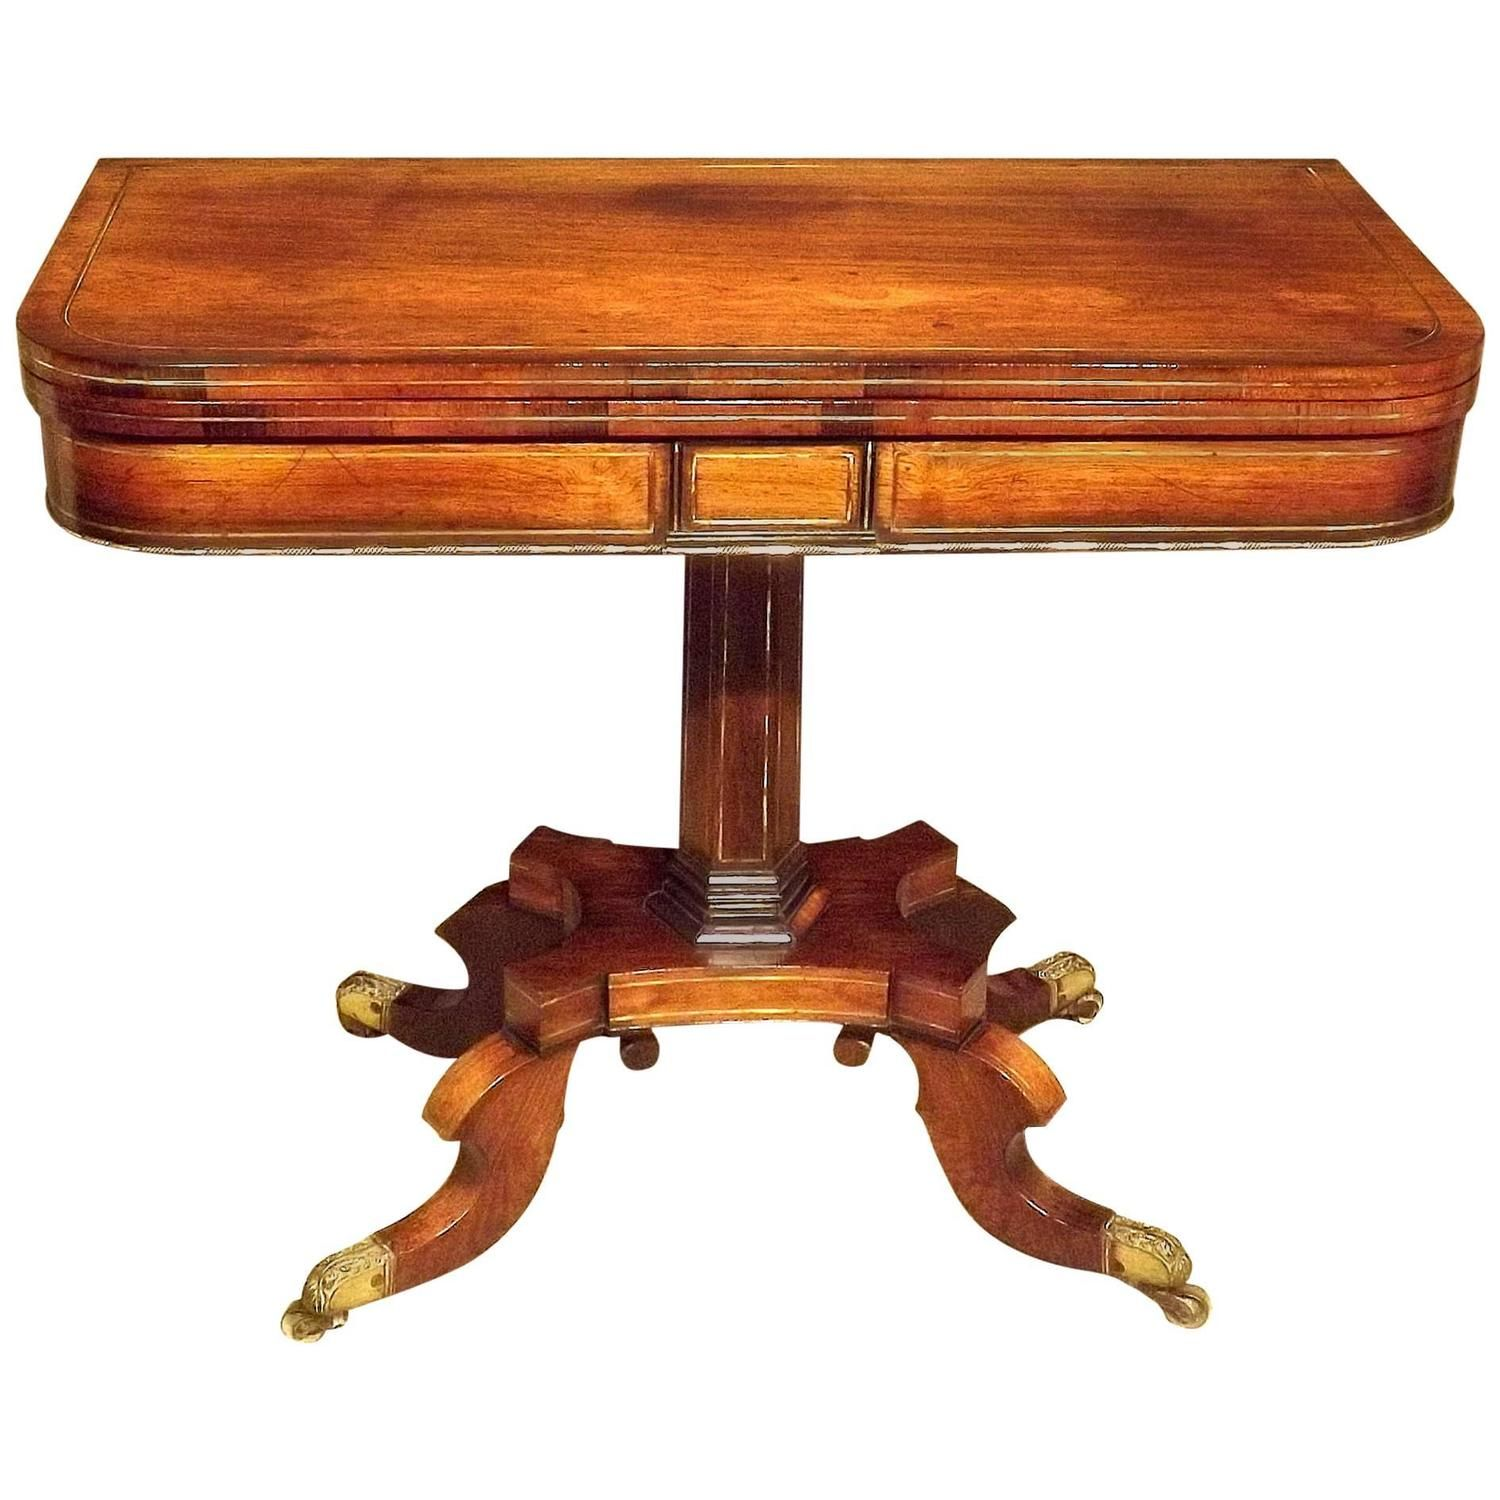 Regency Rosewood And Brass Inlaid Card Table From A Unique